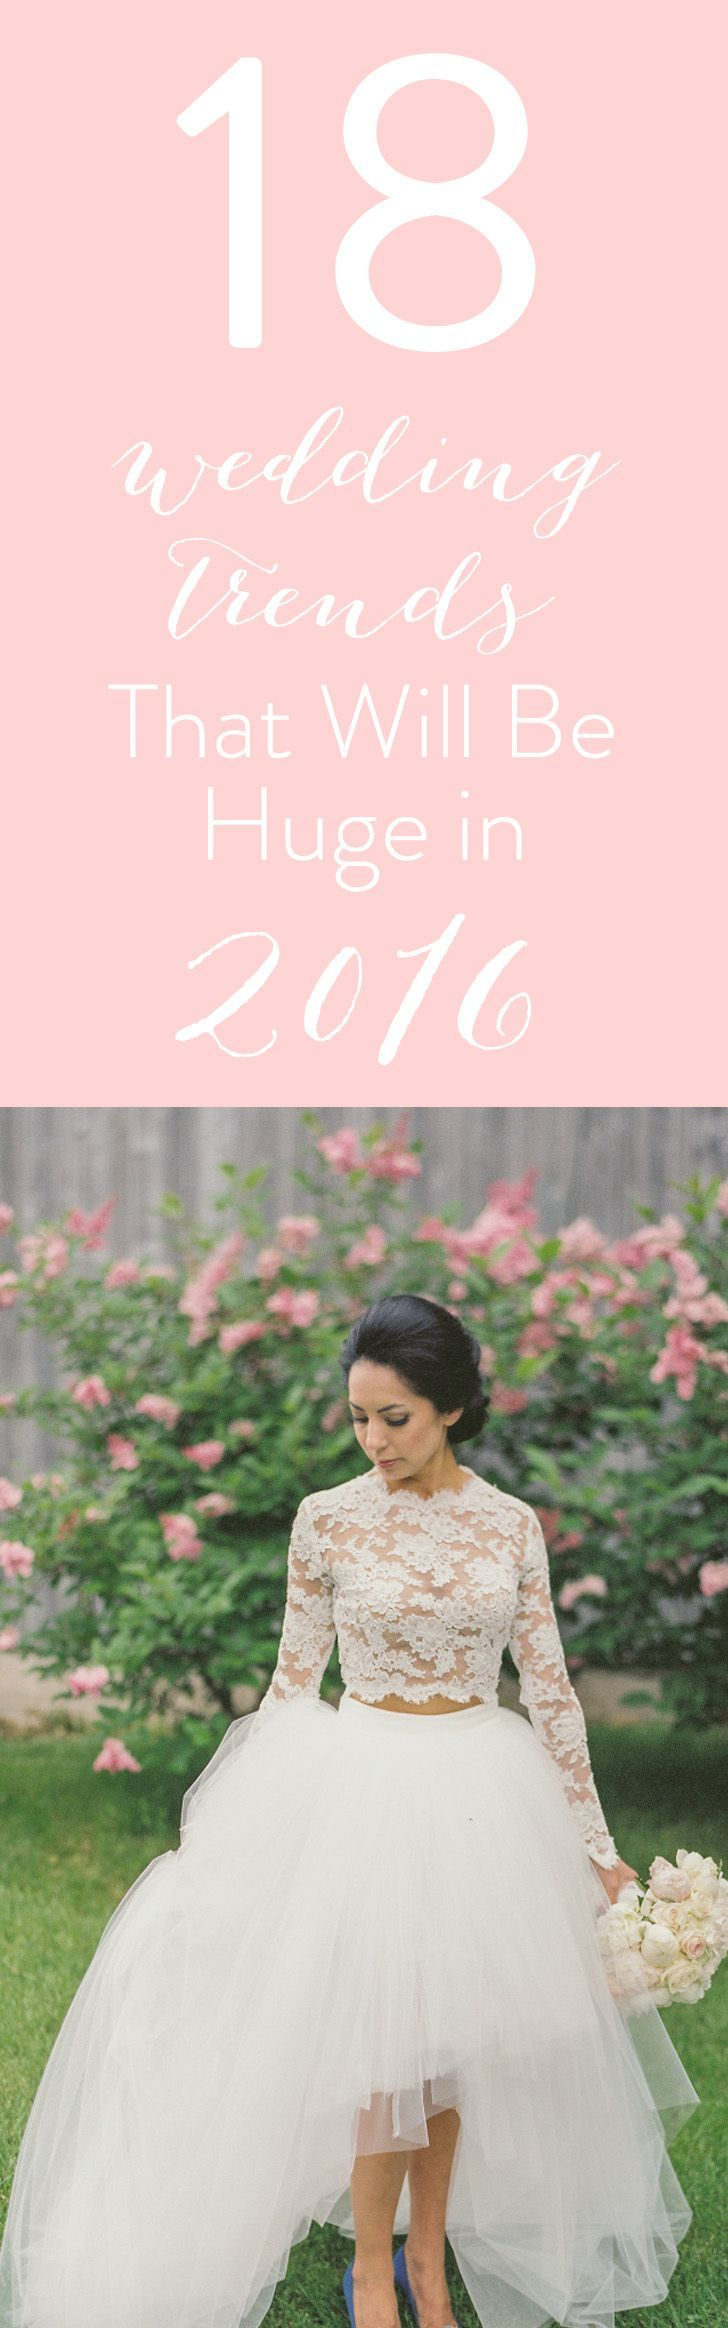 Wedding trends for 2016 http://www.stylemepretty.com/2016/01/01/wedding-trend-predictions-2016